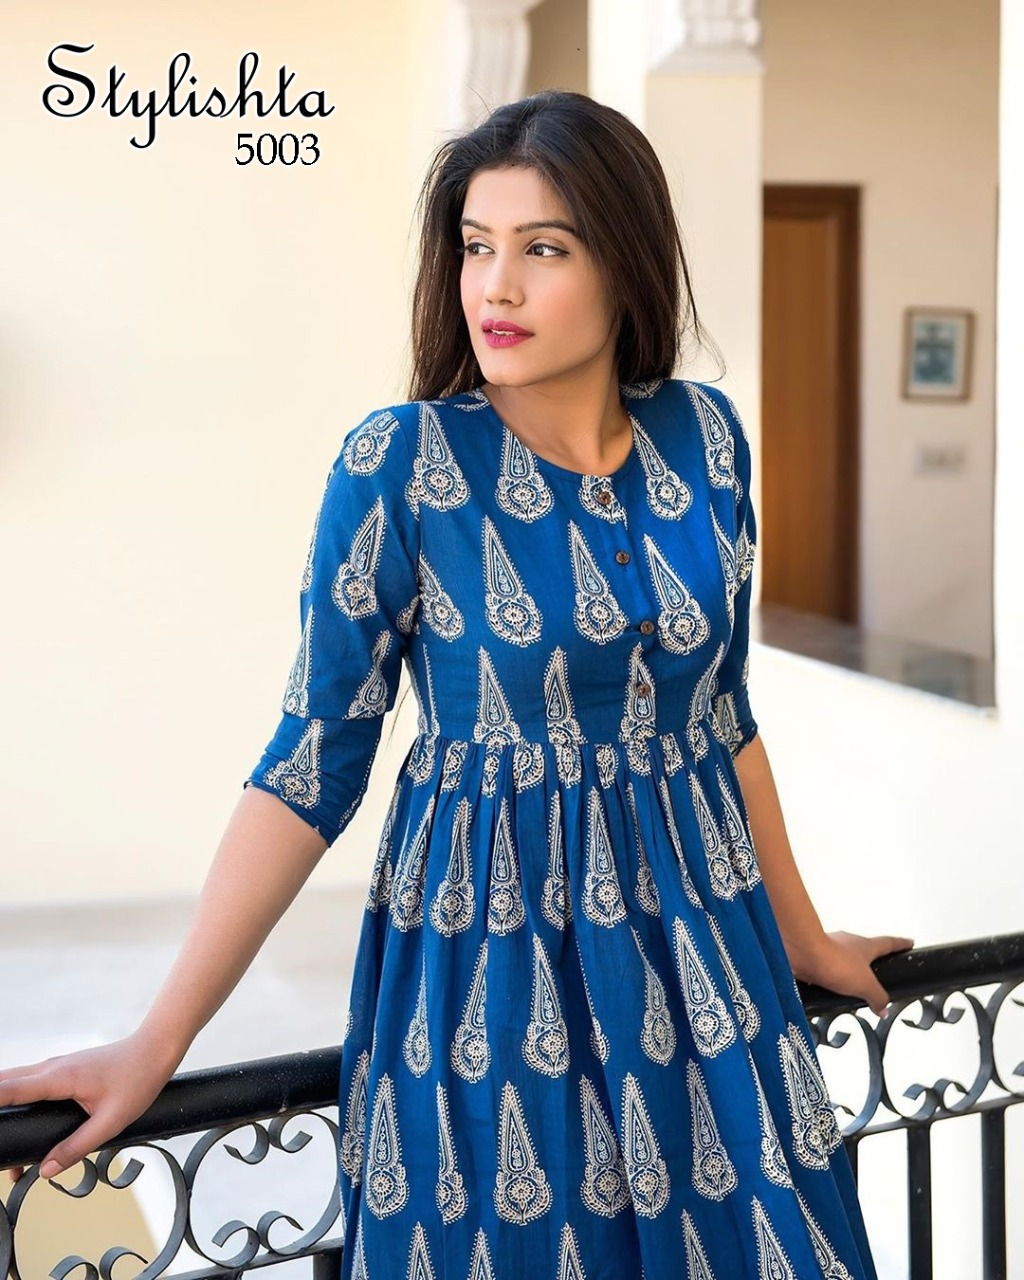 Tejaswee Stylishta Vol 3 Kurti Wholesale Catalog 6 Pcs 7 - Tejaswee Stylishta Vol 3 Kurti Wholesale Catalog 6 Pcs